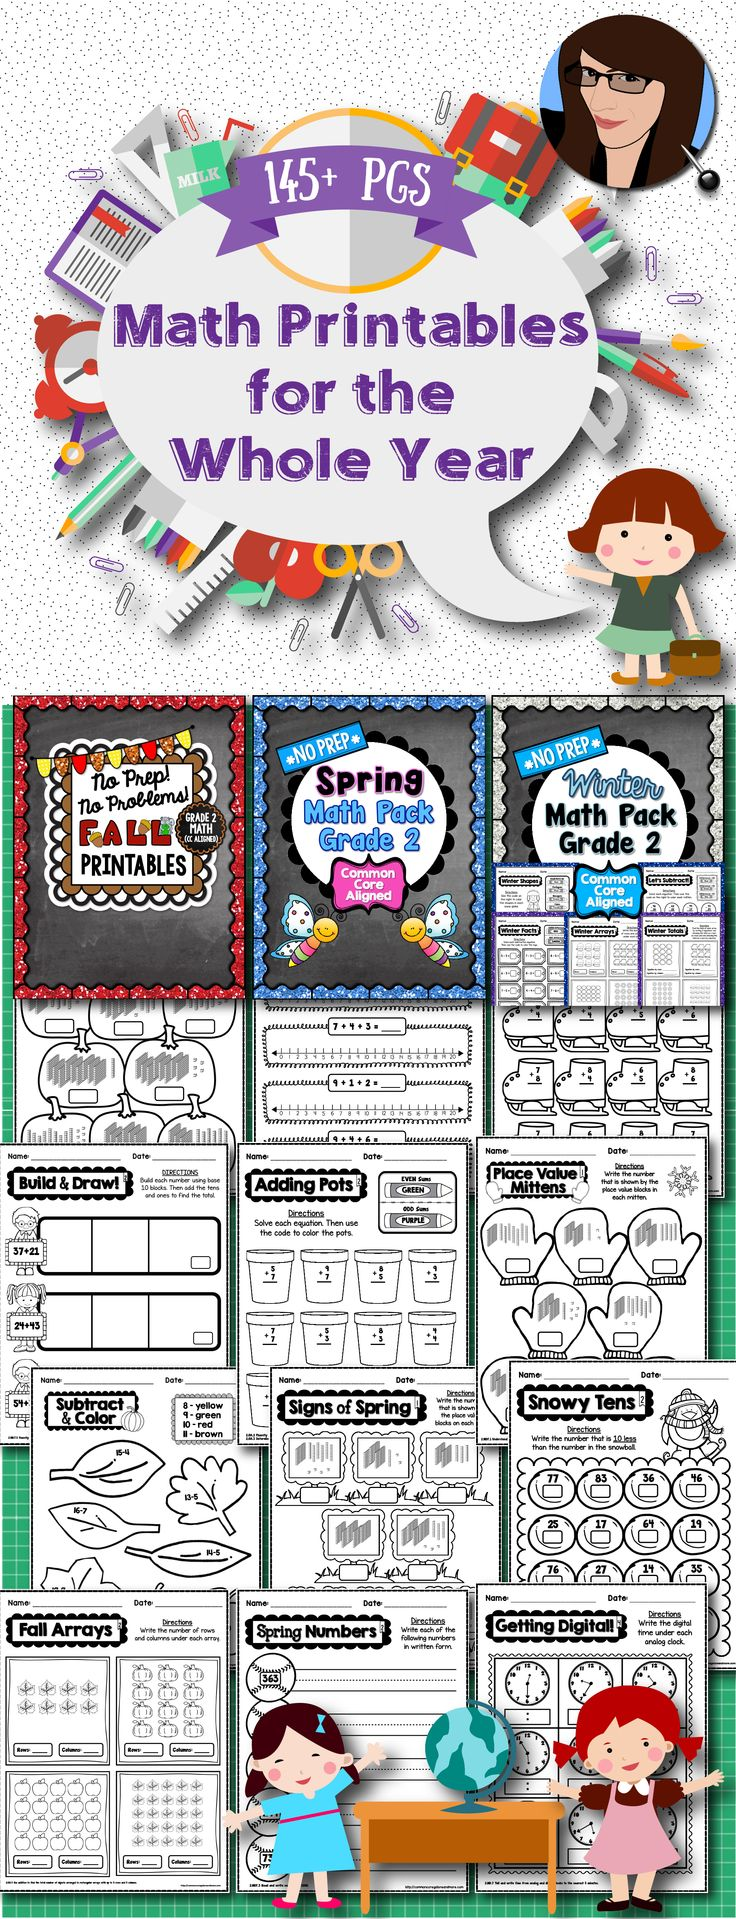 Seasonal No Prep Math Printables for the Whole School Year - 2nd Grade (145+ pages)